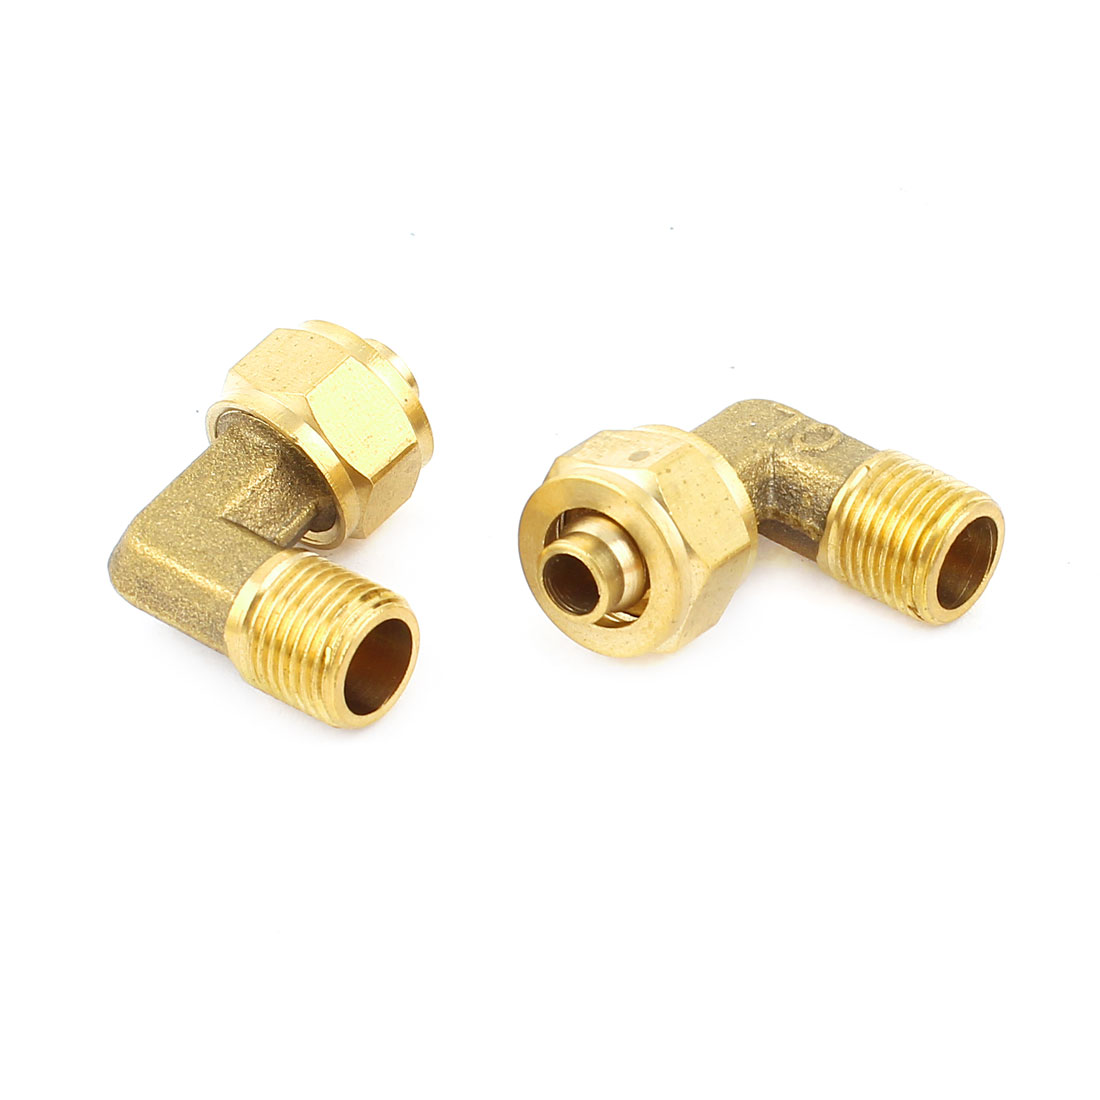 2Pcs 1/8PT Thread 90 Degree Elbow Quick Connector for 6mm Tubing